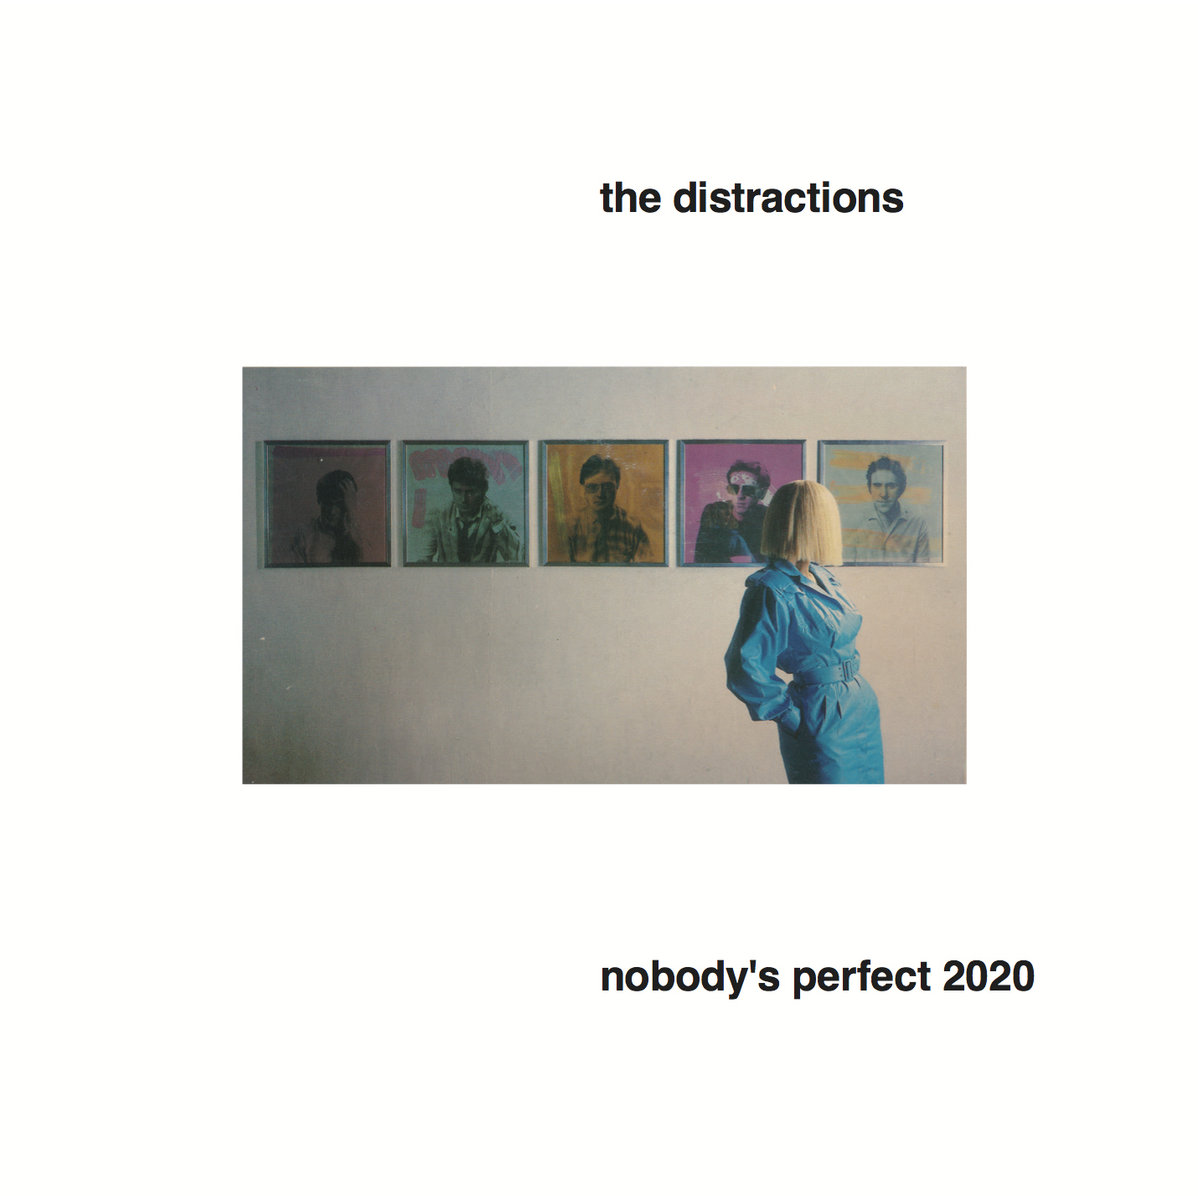 The Brave Little Glow That Wouldn't Go Out – A Few Words About The Distractions' 1980 Debut